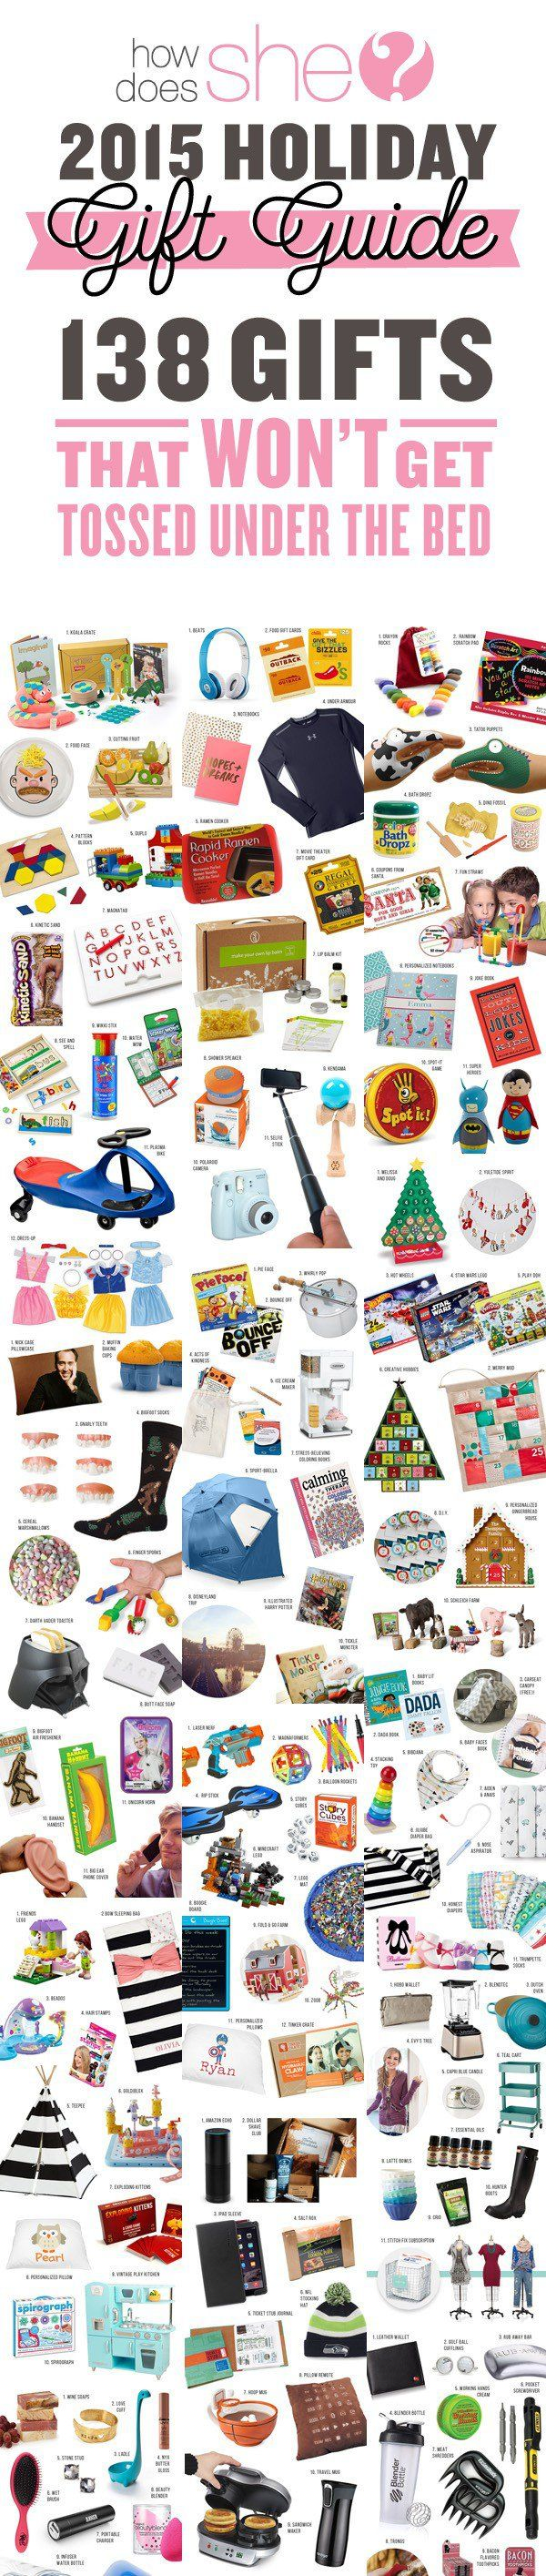 Great Deals. 138 Gifts That Won't Get Tossed Under the Bed – The Ultimate Gifts for Everyone on Your List!